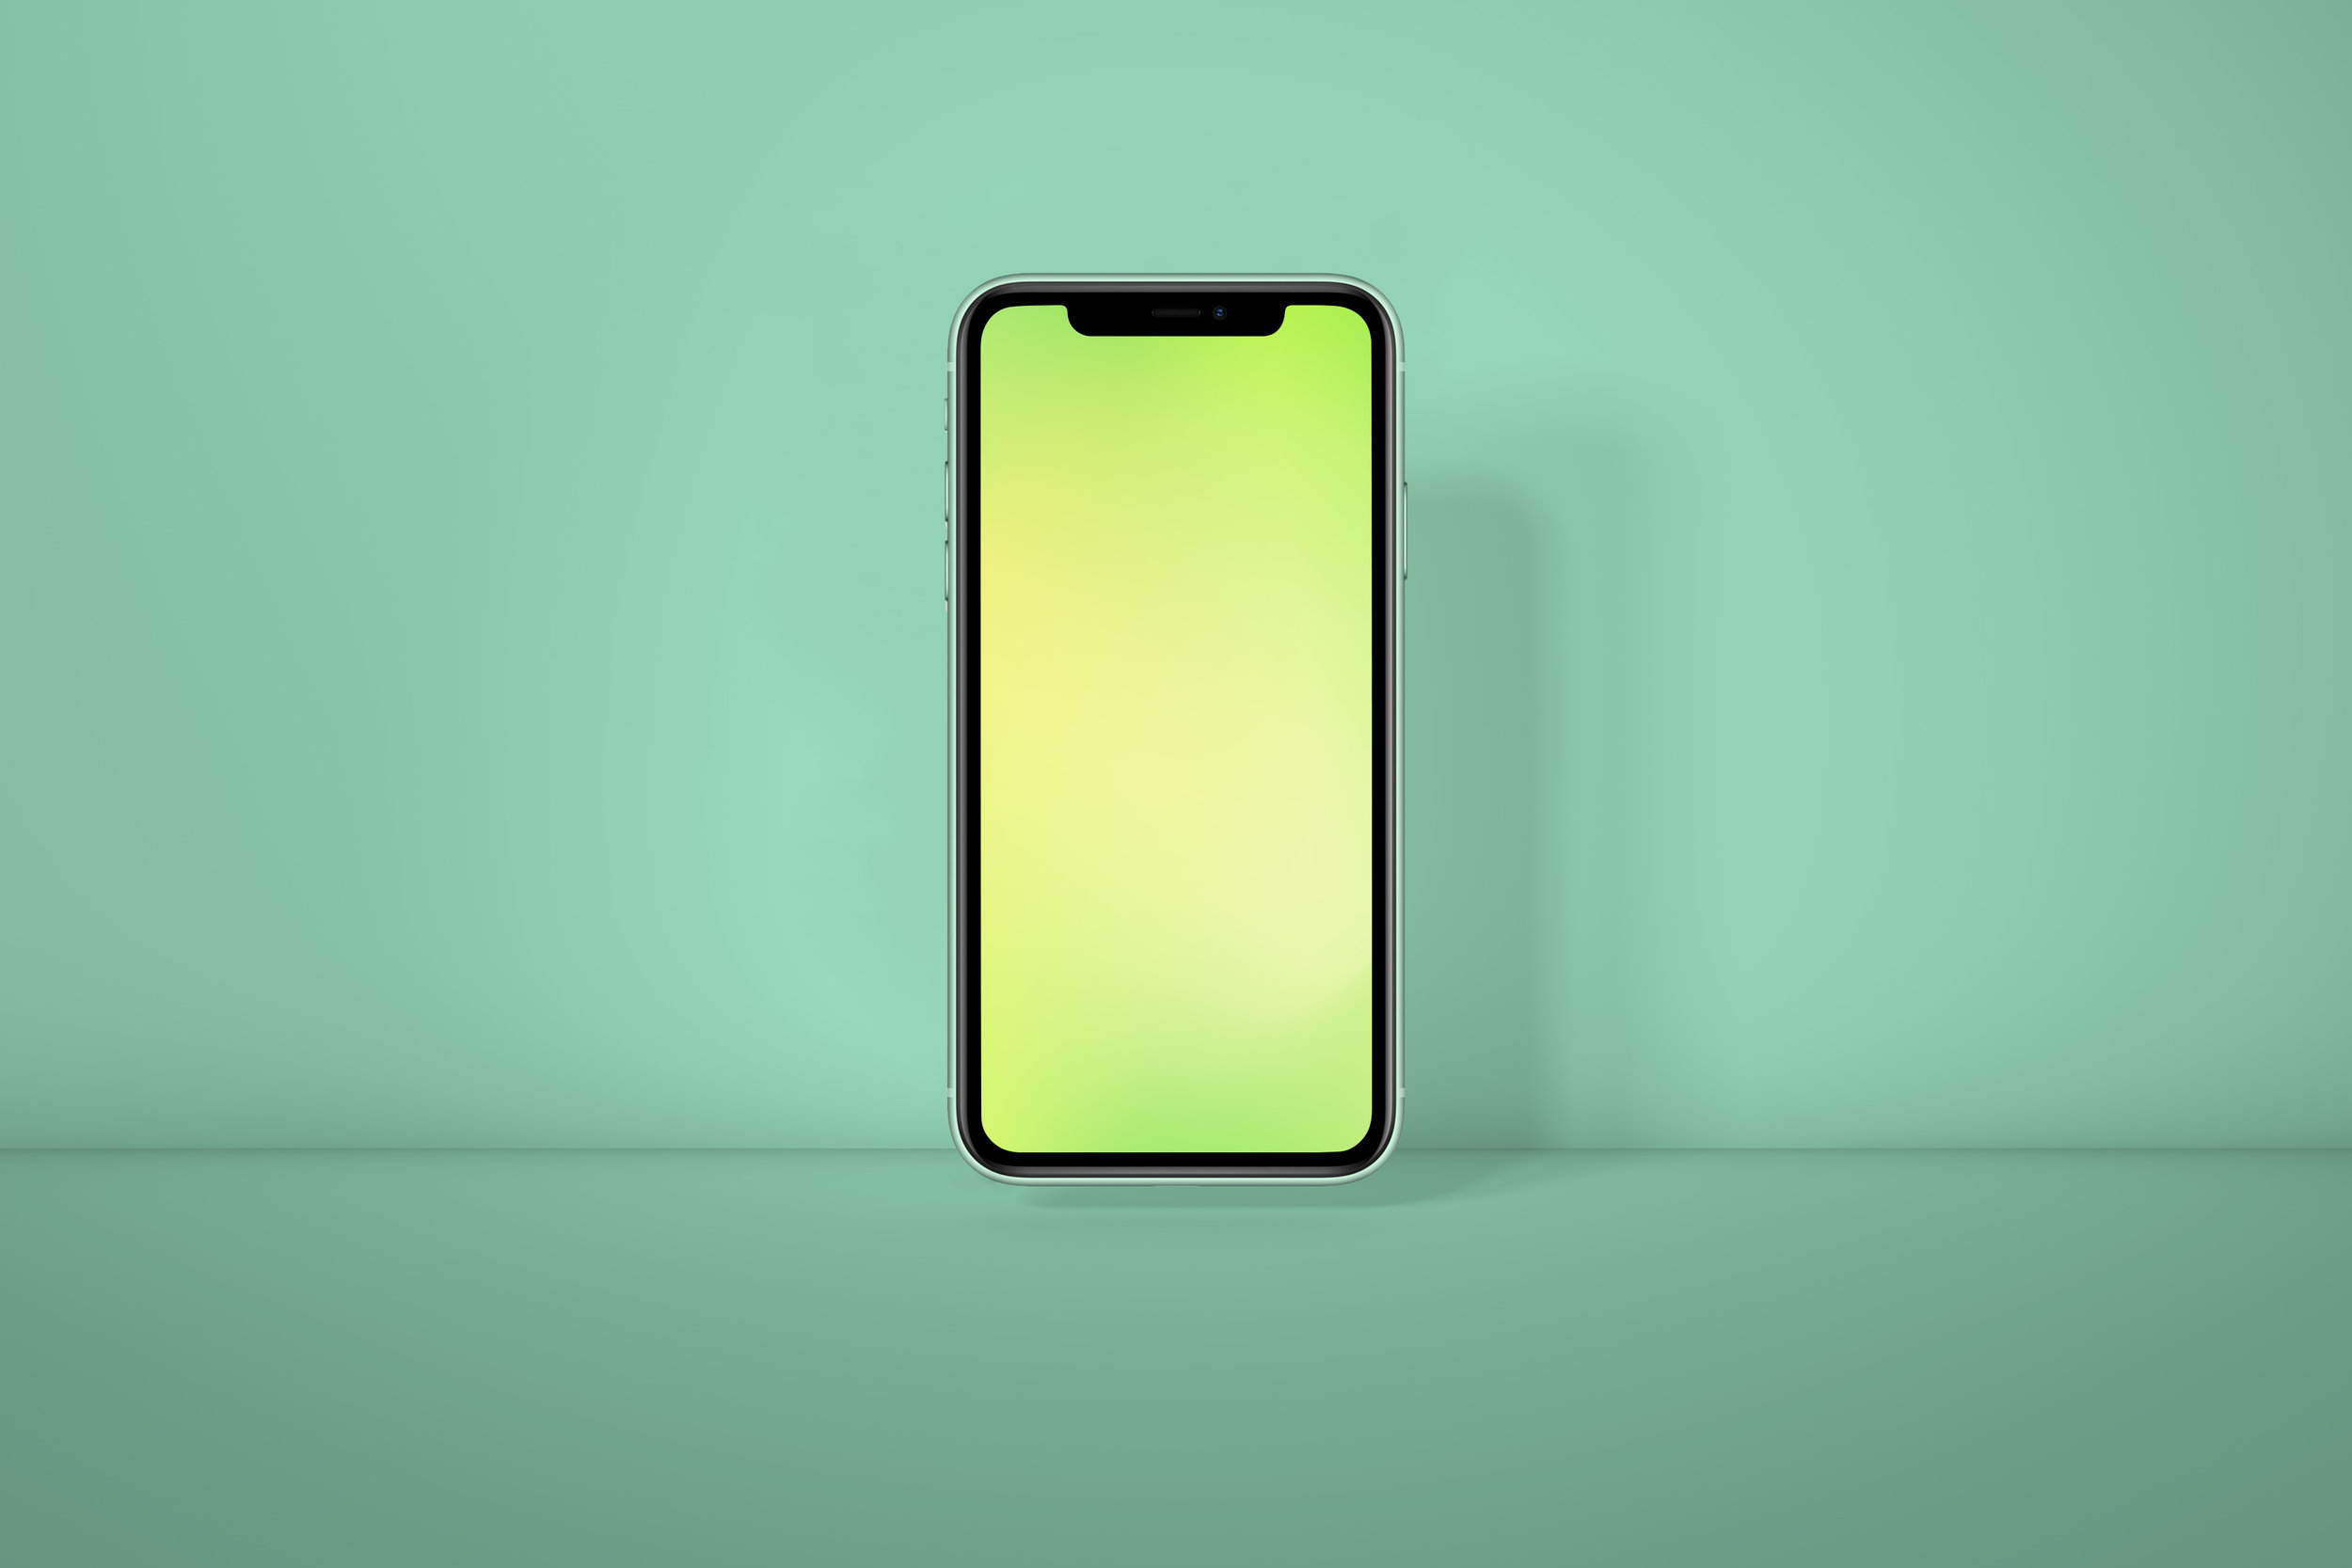 iPhone 11 PSD Mockup - All New iPhone 11 Mockup Generator with all colors